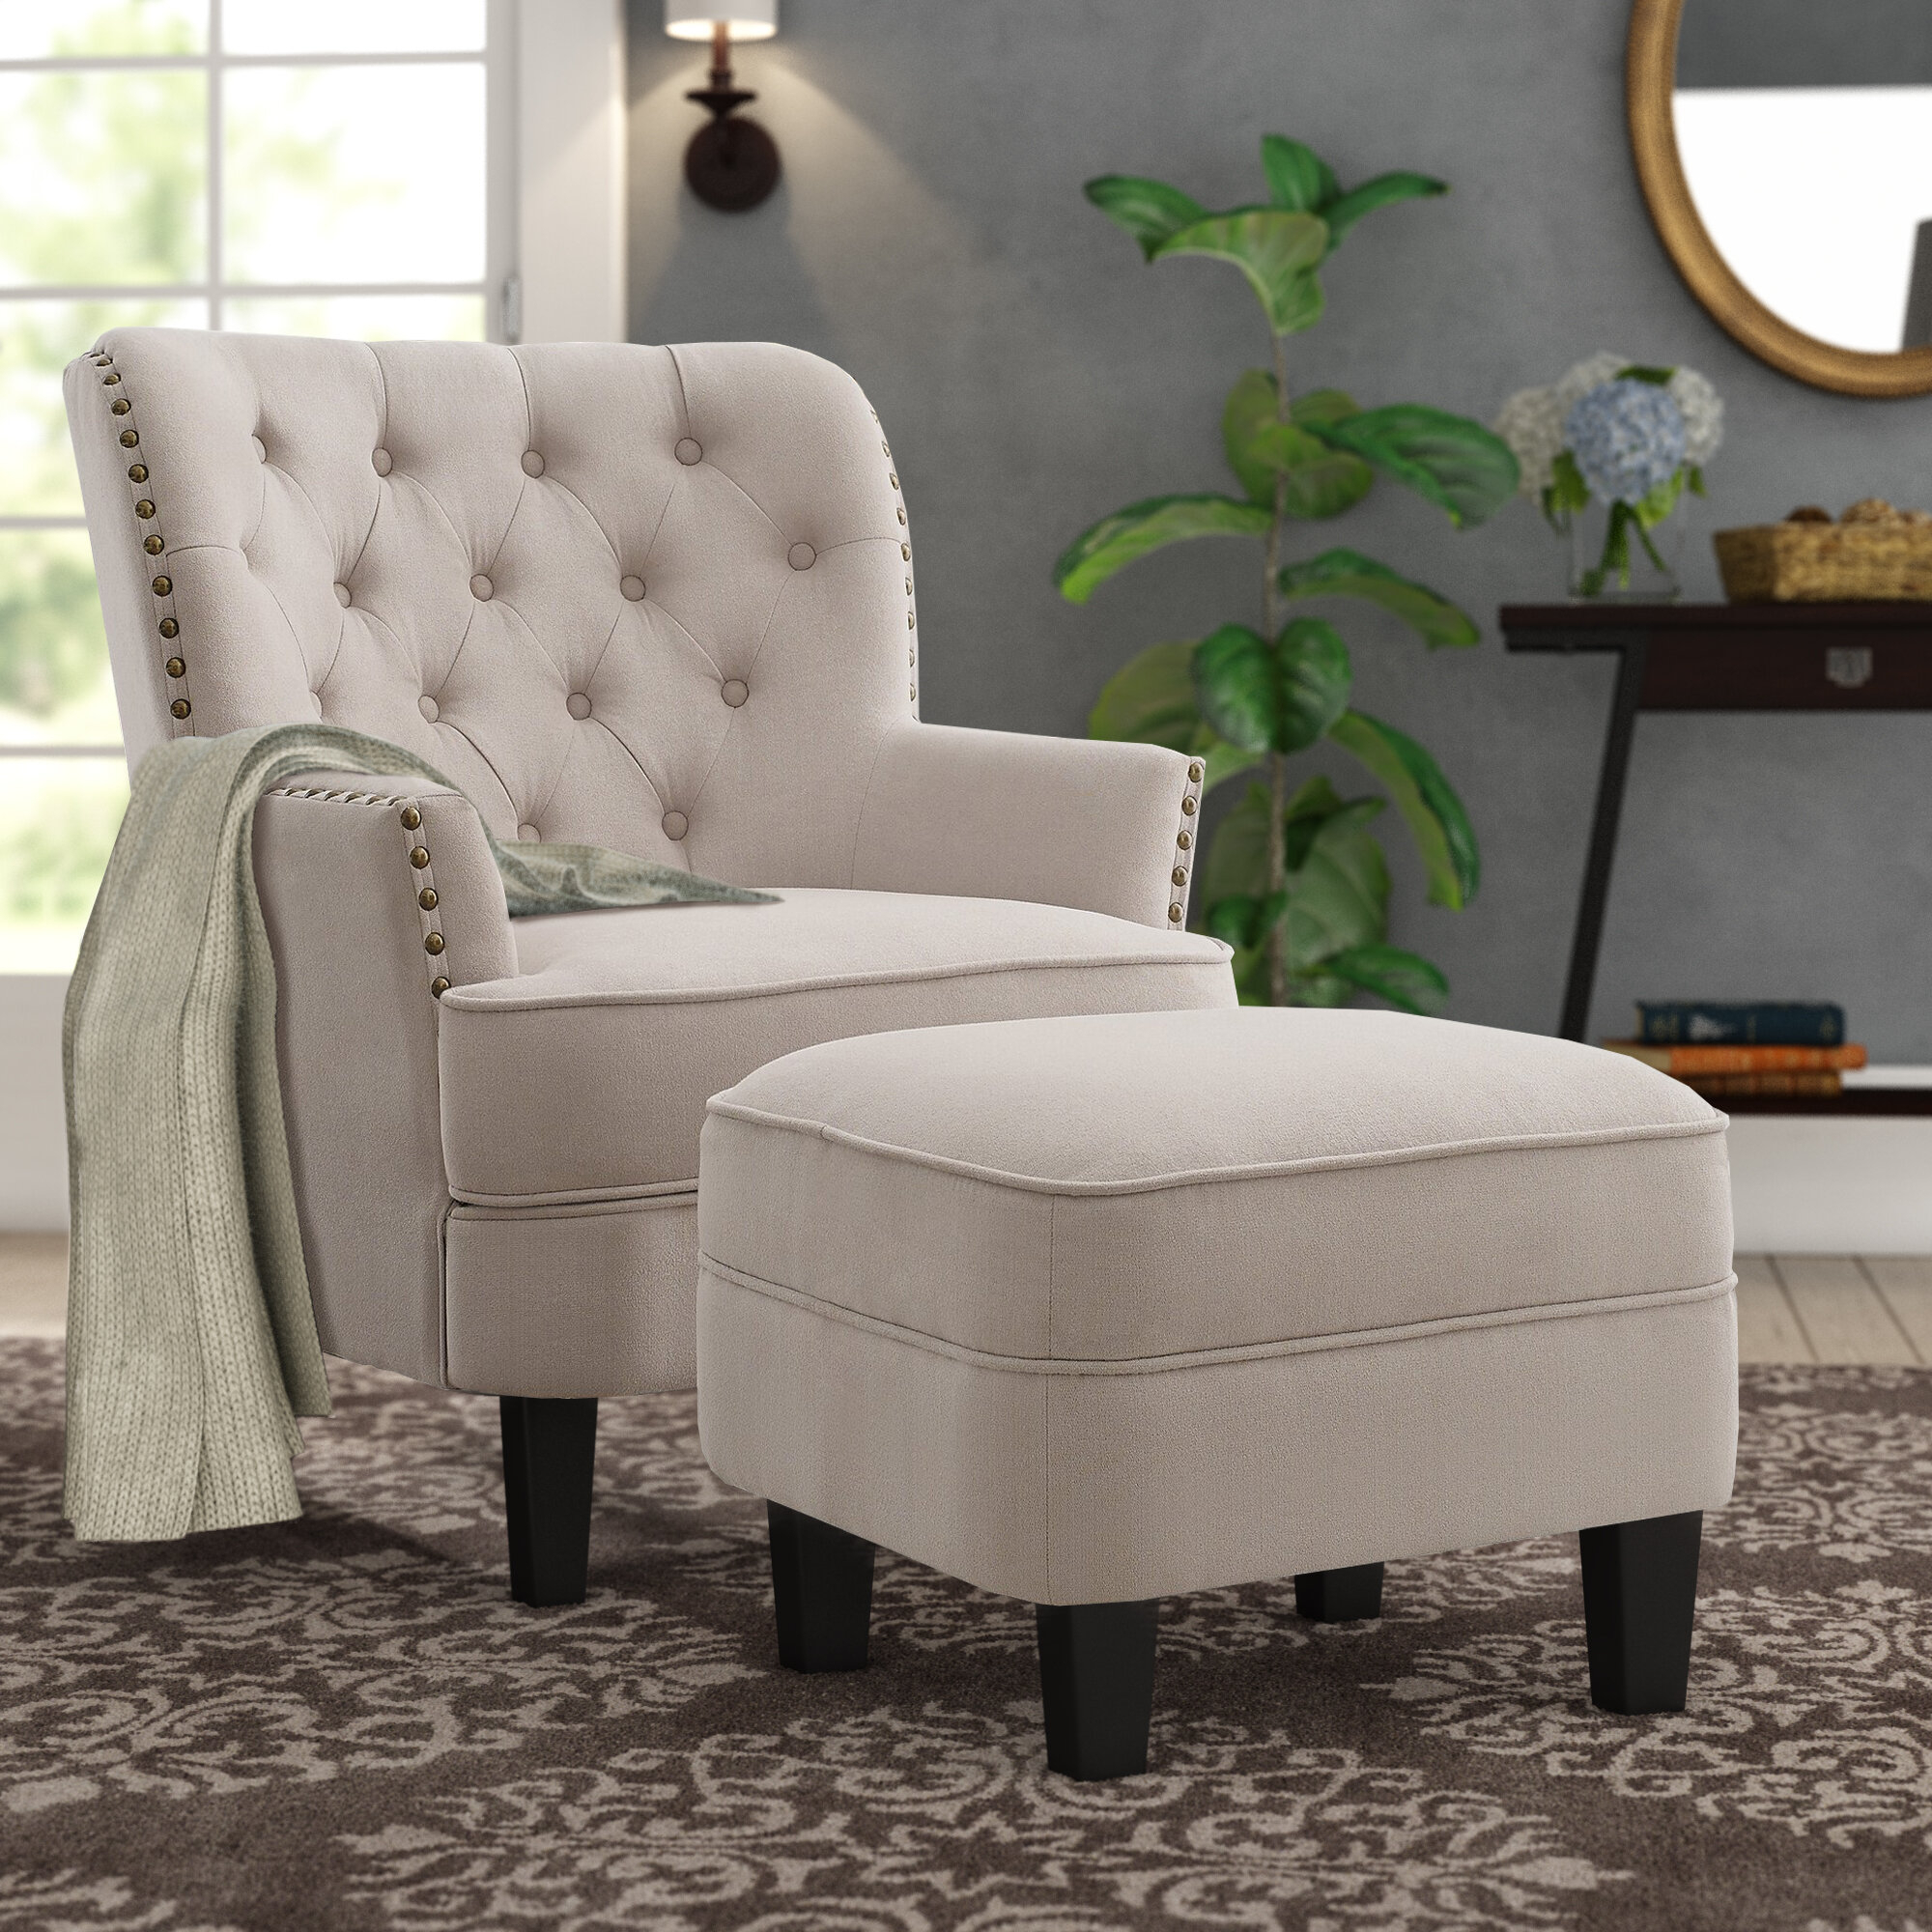 Featured Image of Michalak Cheswood Armchairs And Ottoman